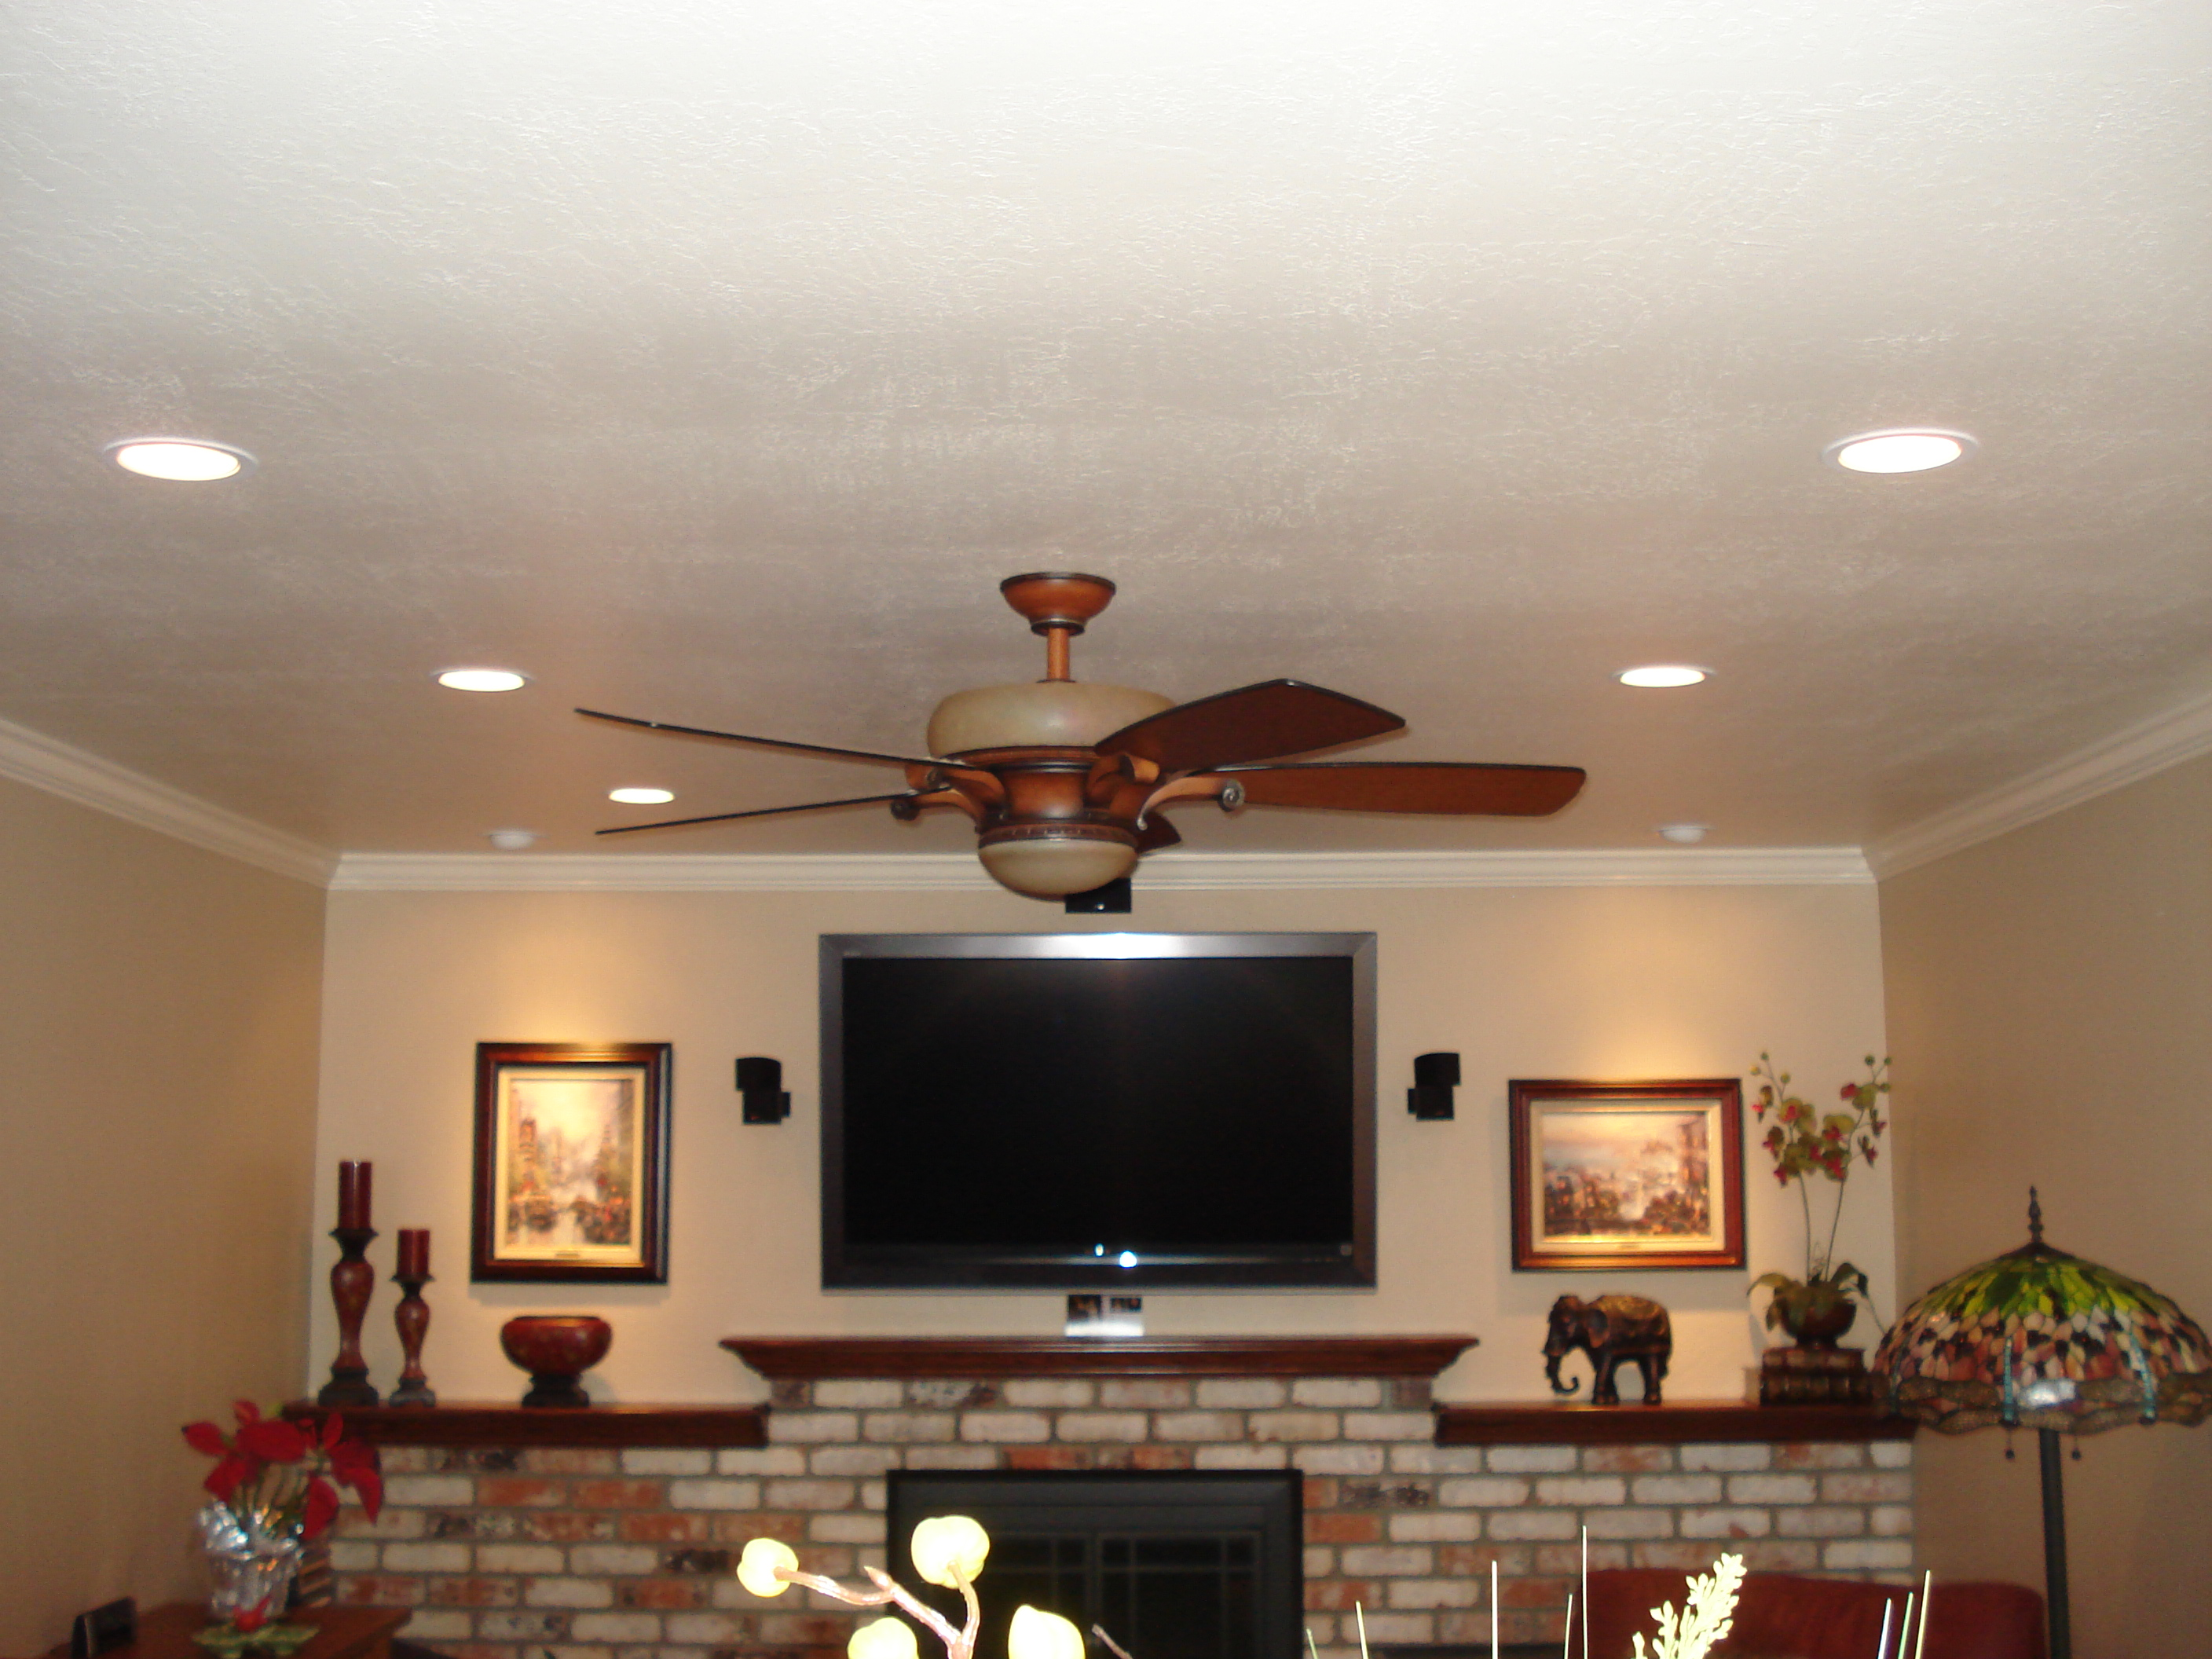 How To Install Ceiling Fans Images 36 Flush Mount Ceiling Fan